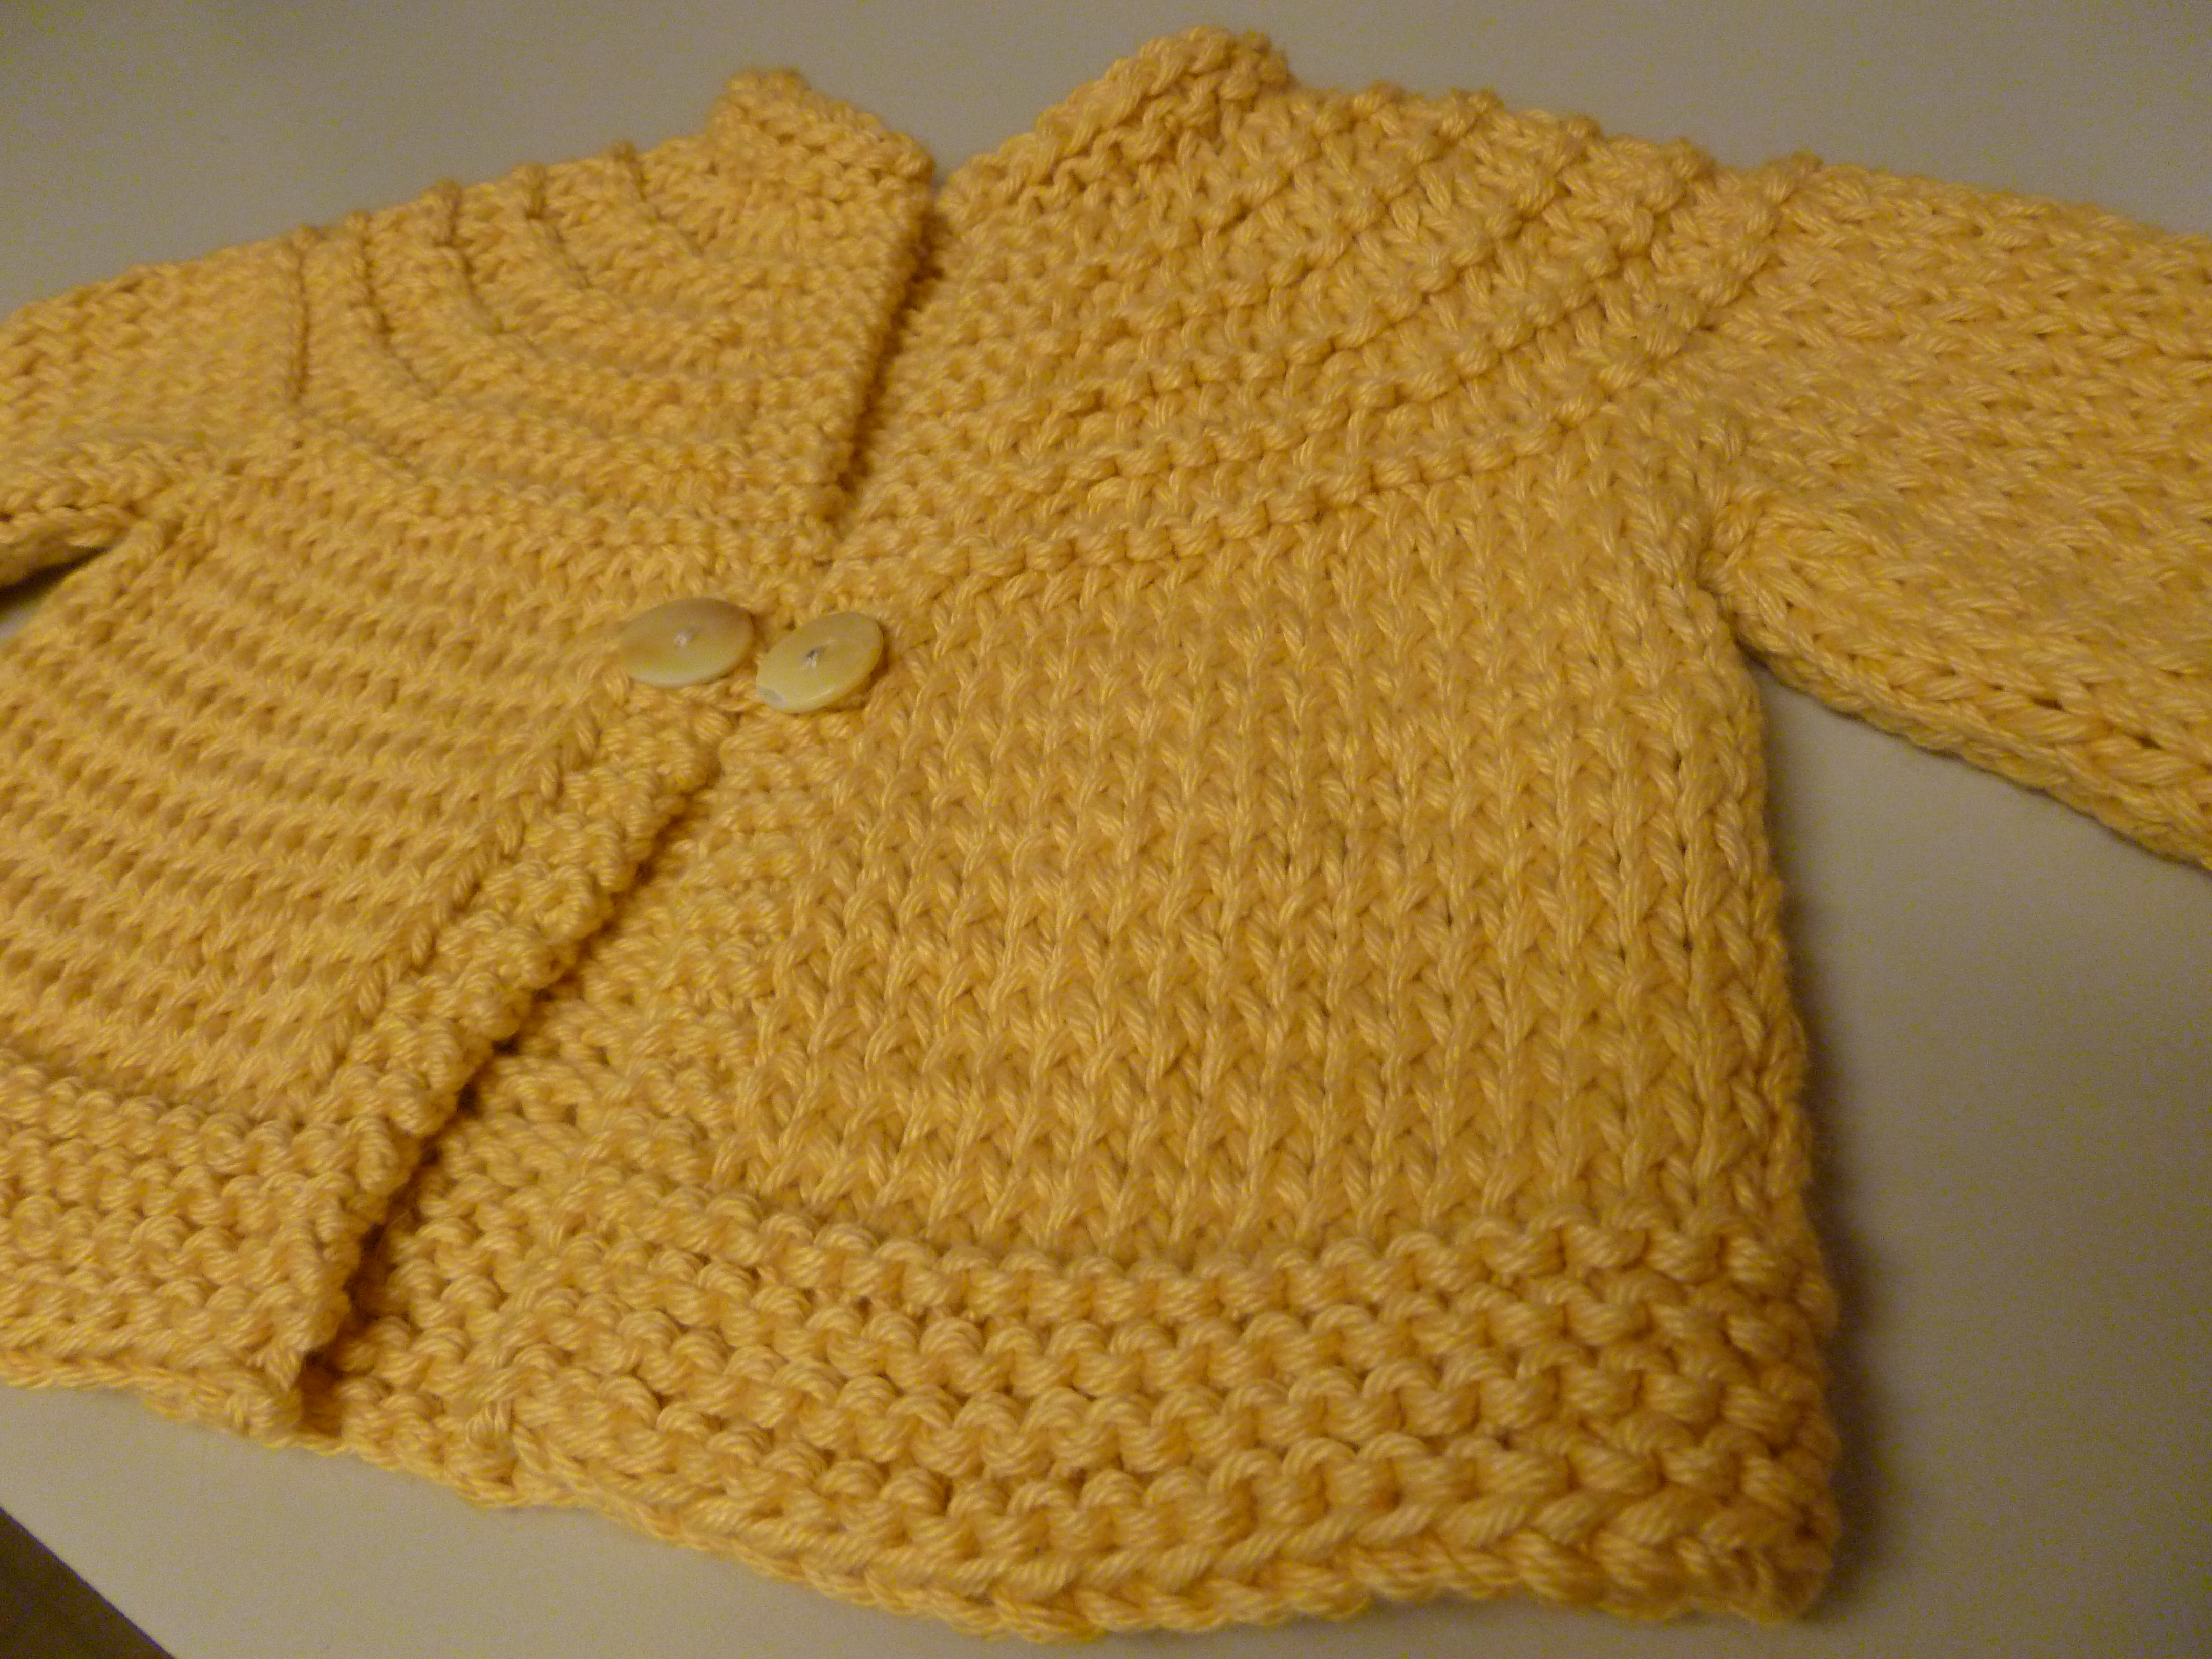 Trendy Baby Knitting Patterns Free : The (eventually) adorably precious baby sweater What It Is